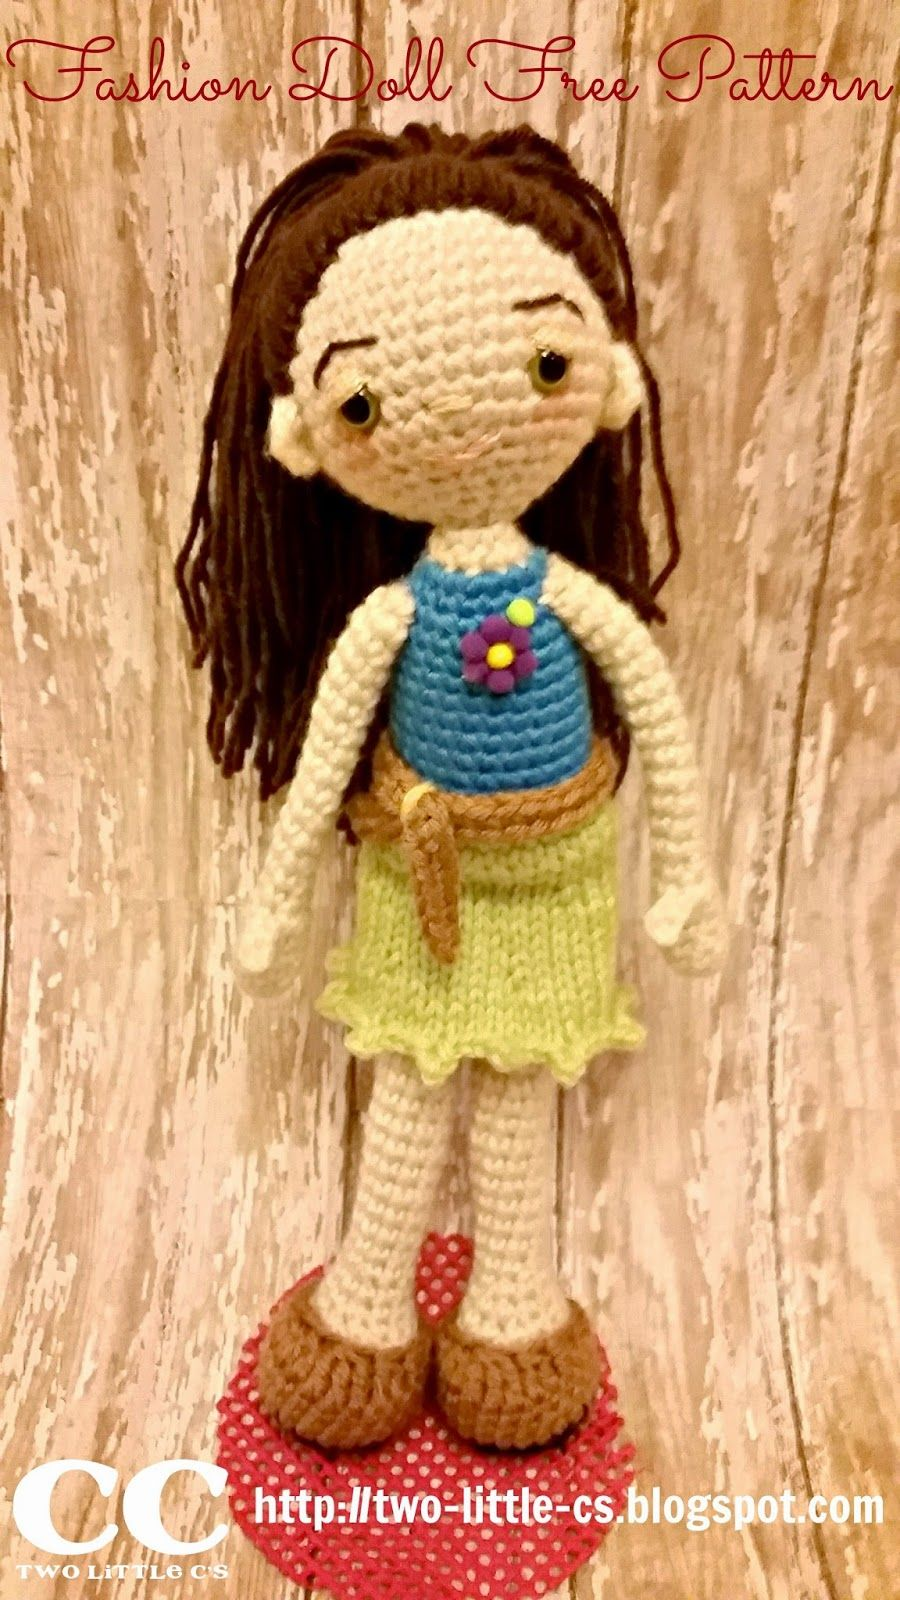 Fashion Doll - Free Amigurumi Crochet Pattern here: http://two ...